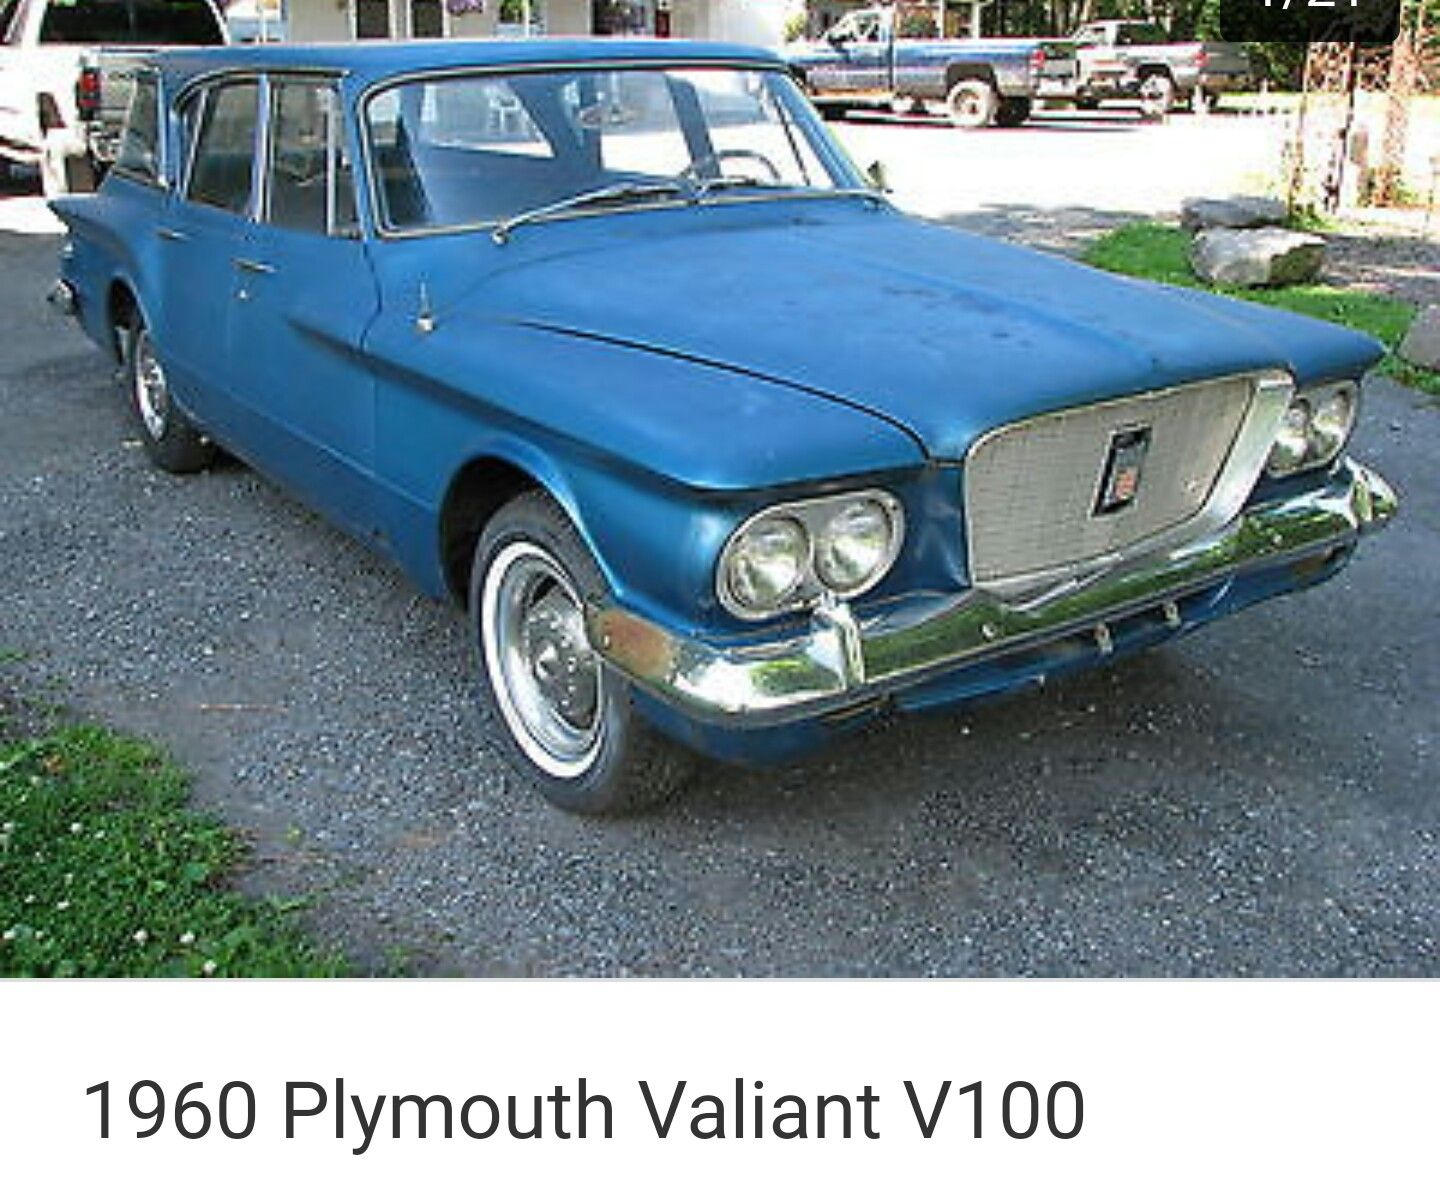 1960 Plymouth Valiant Station Wagon | Antique Cars - 2 ...